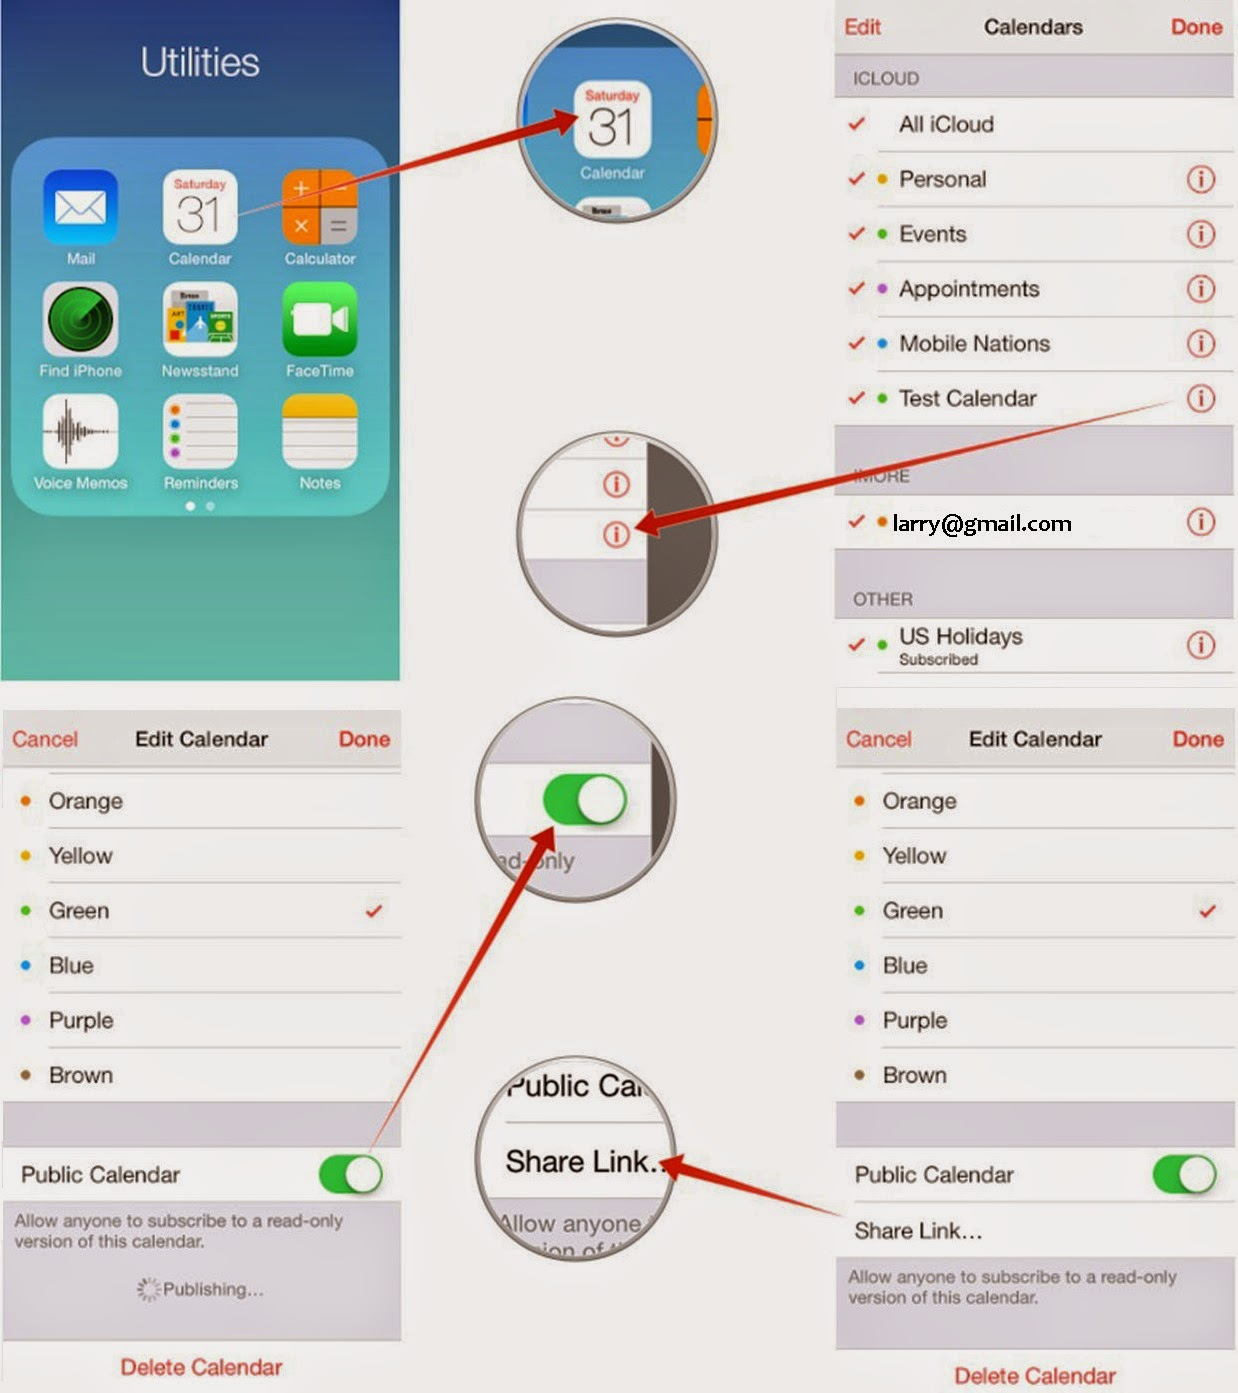 How To Share Icloud Calendars On Iphone And Ipad Techsupport Bmw Wds Java Wiring Diagram That Calendar Will Now Be Shared Publicly Apples Site Anyone Everyone Who Knows Where Look Able See It But Not Edit